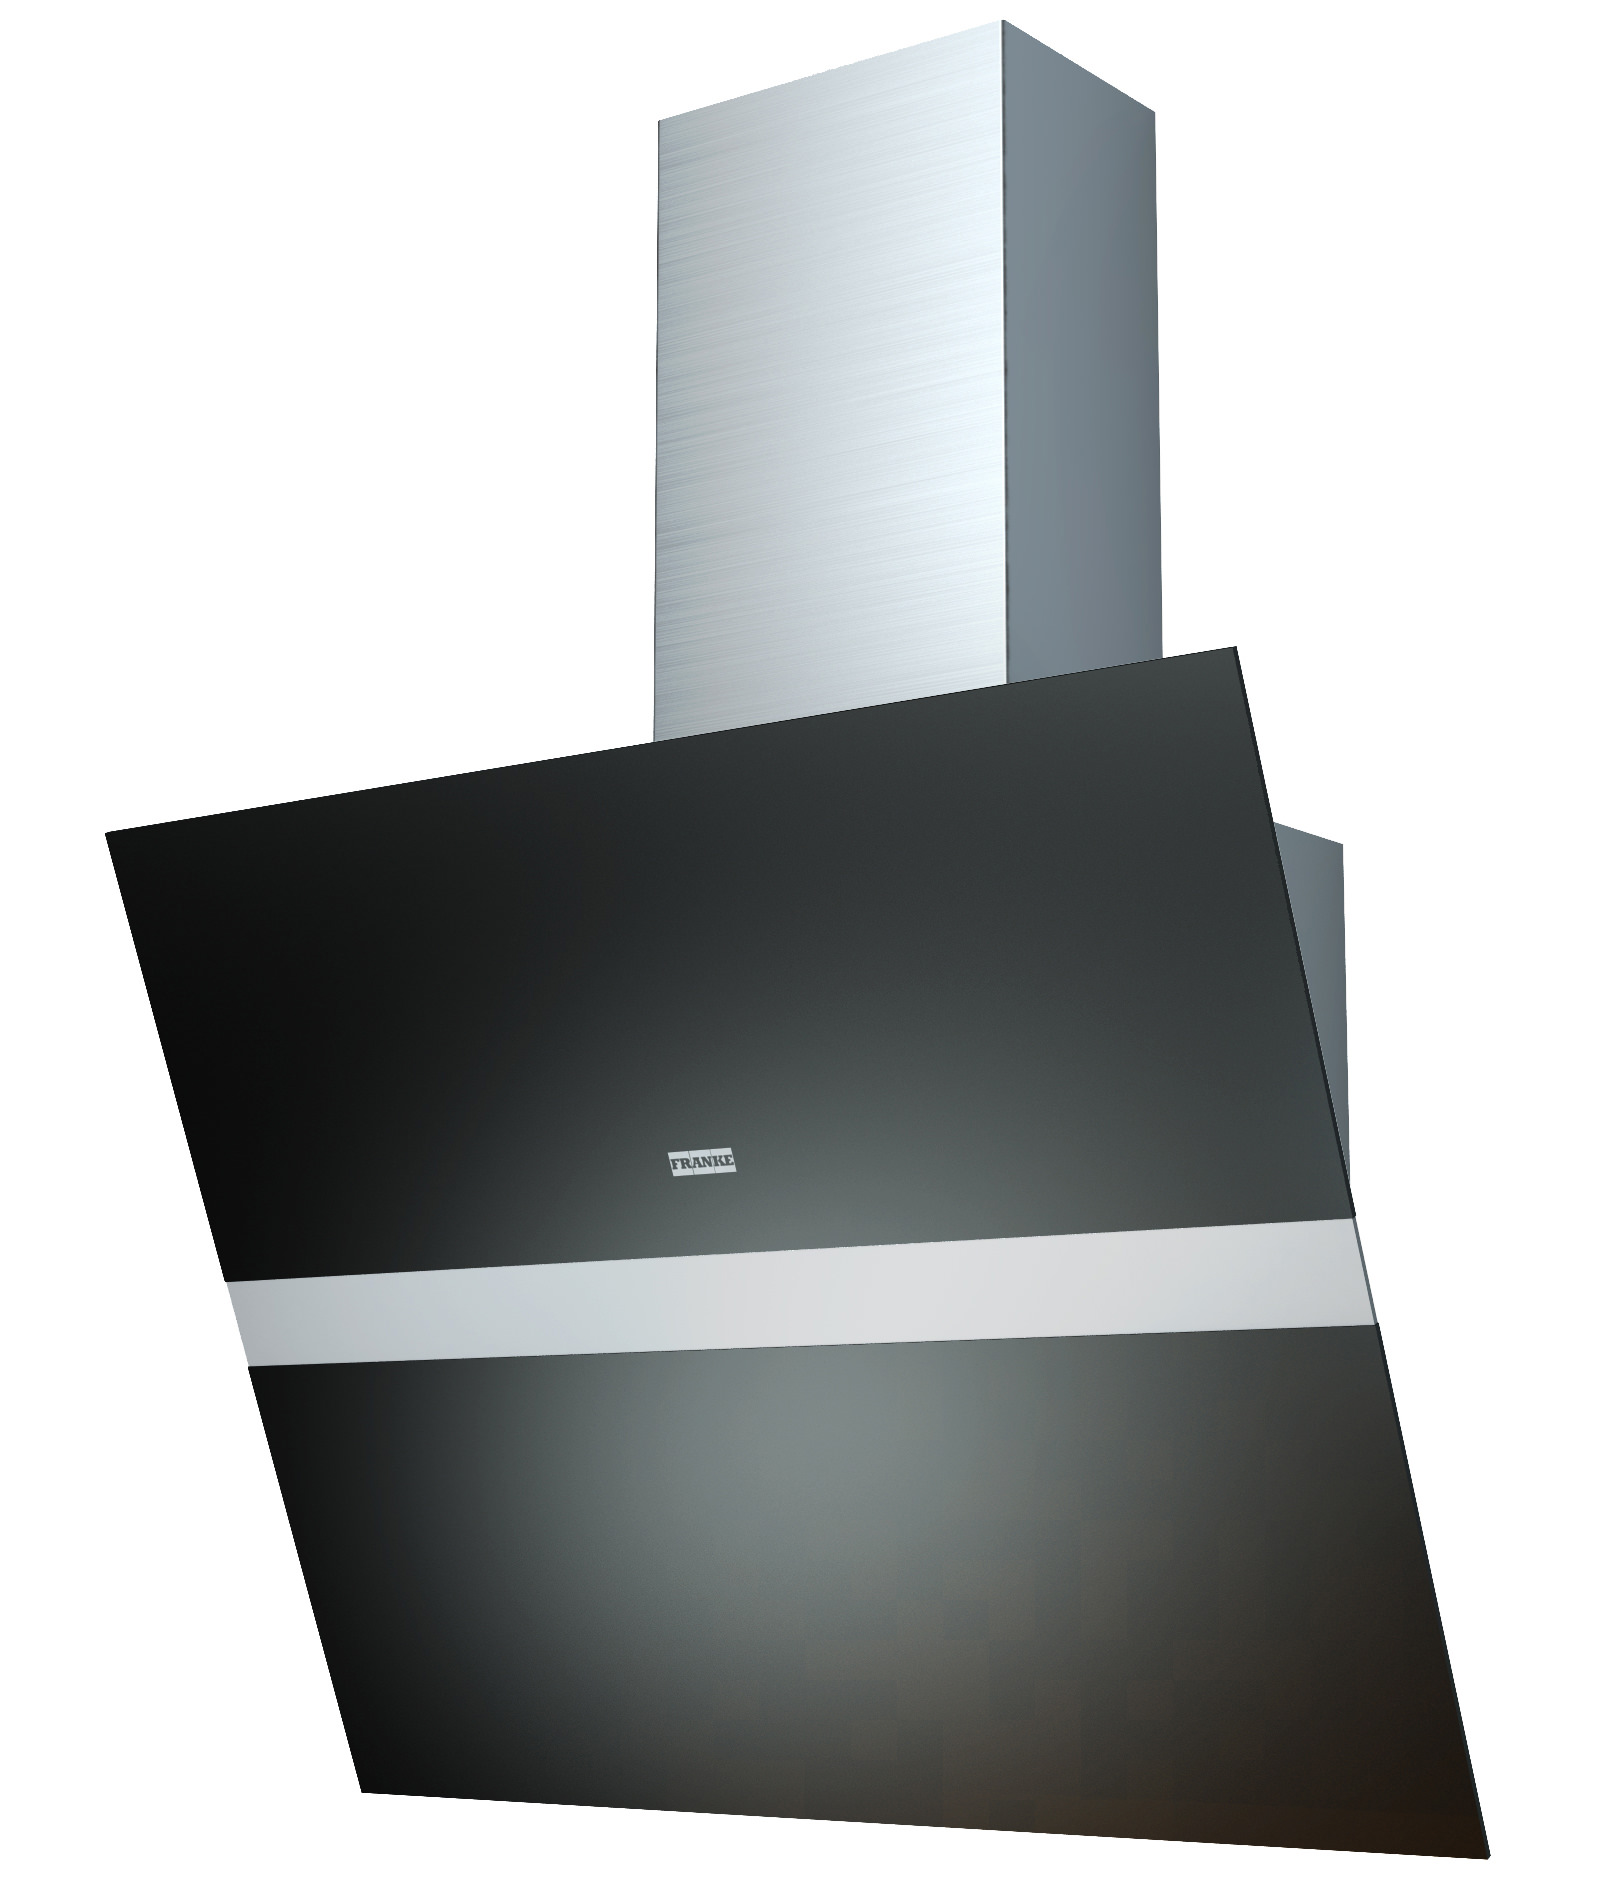 Kitchen Hood Franke Swing 900mm Fsw 918 Tc W Bk Xs Ch V2 Black Kitchen Hood